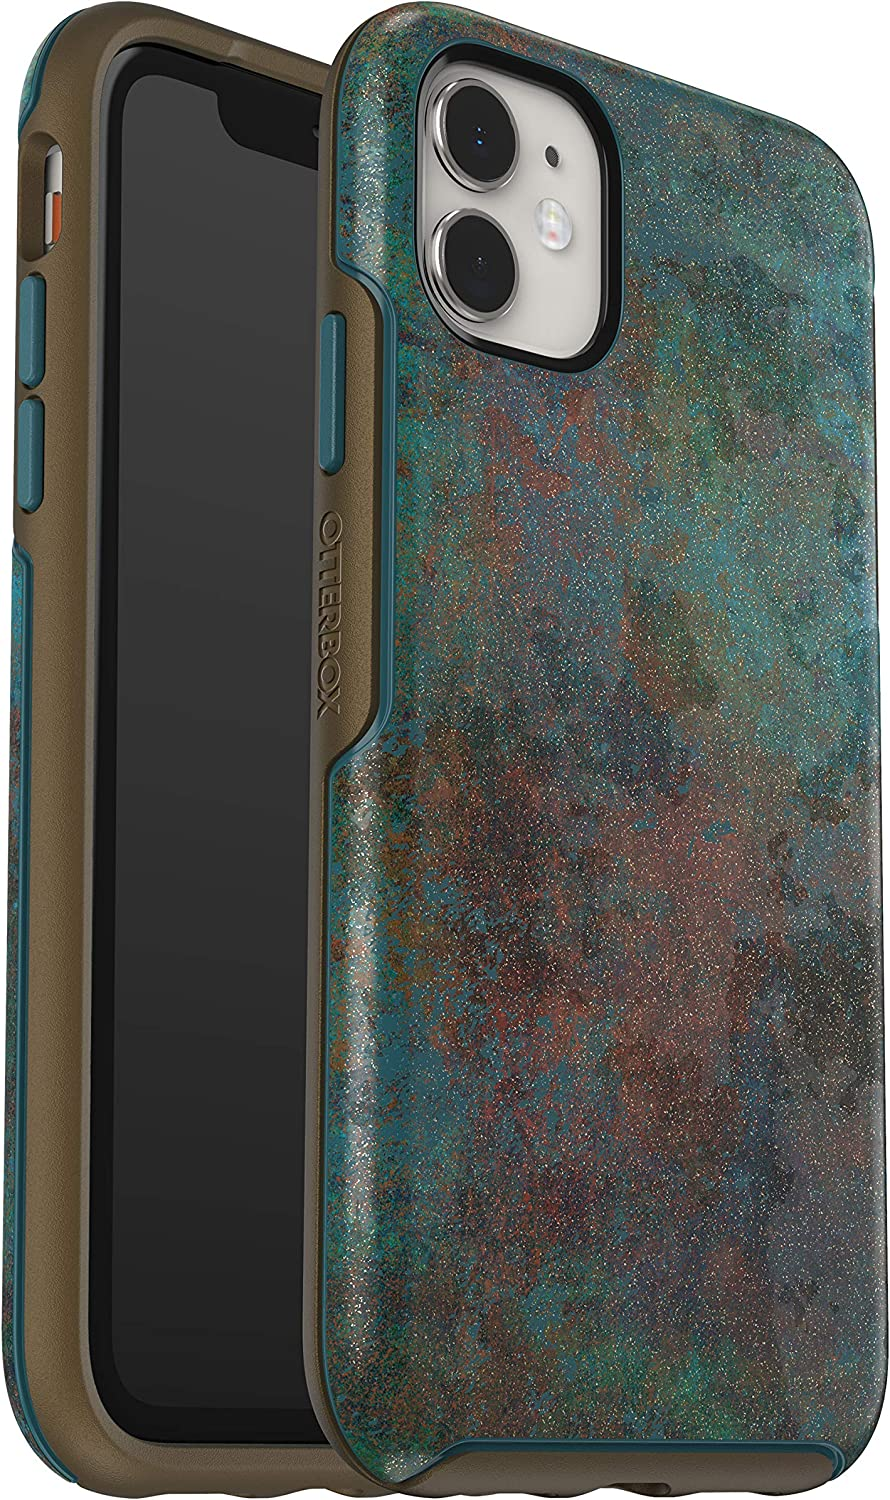 OtterBox SYMMETRY SERIES Case for iPhone 11 - FEELING RUSTY (COLONIAL BLUE/BRONZE/FEELING RUSTY IML)